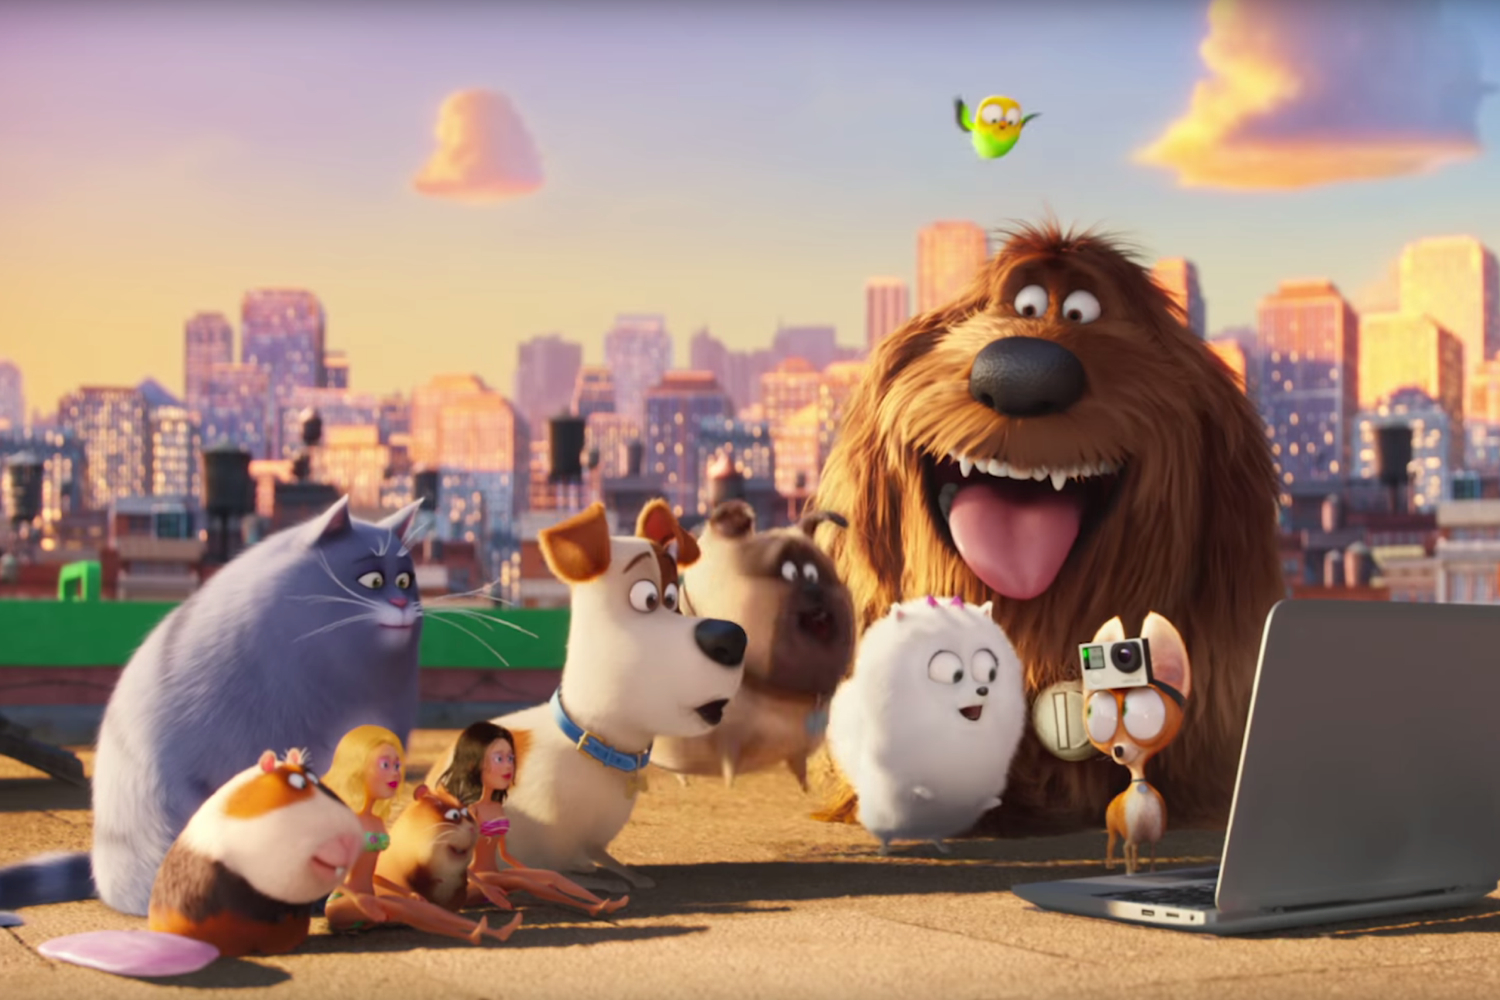 'Secret Life of Pets' fetches $103M in opening days